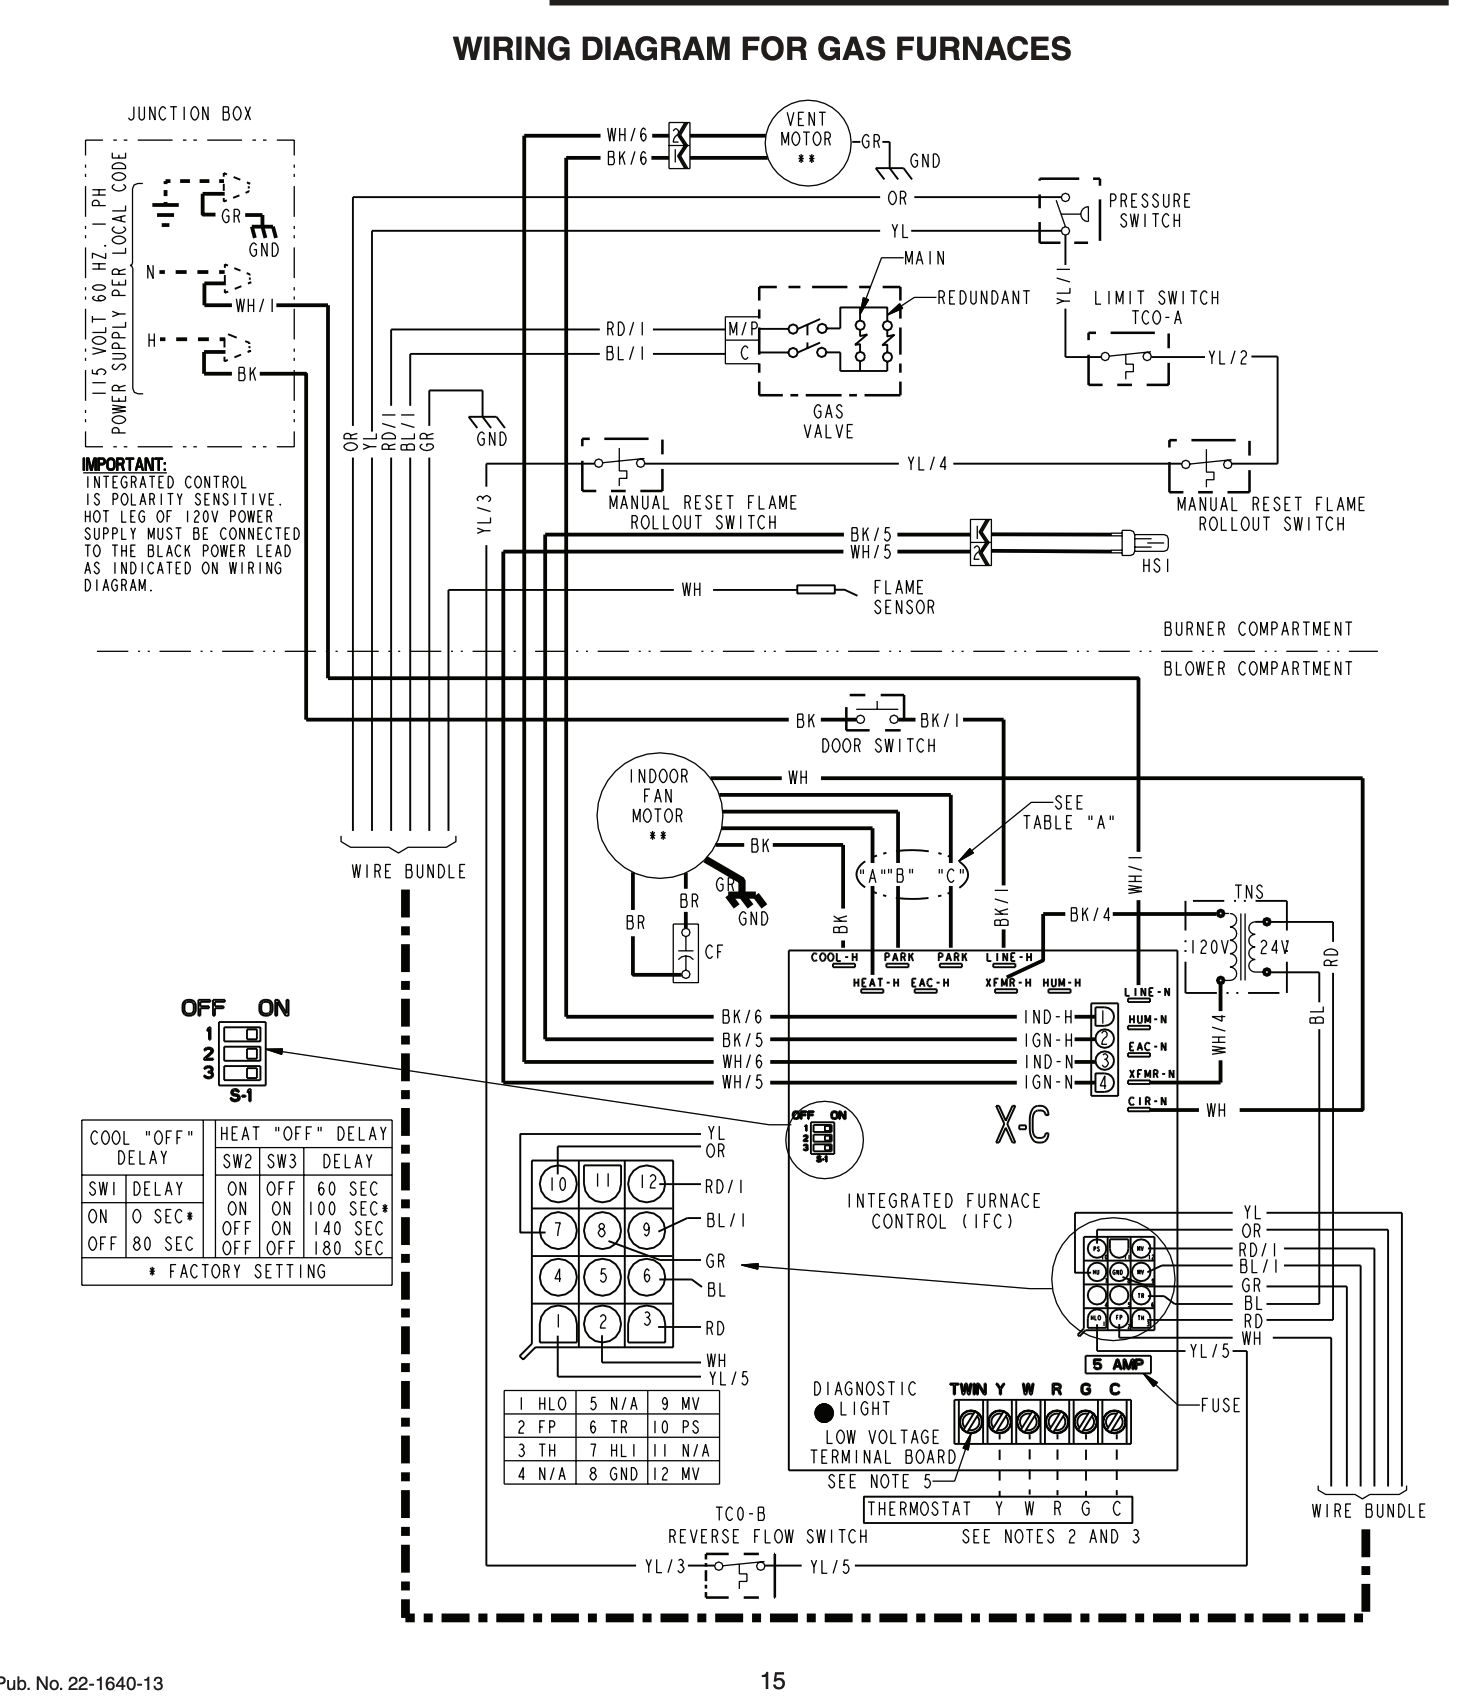 Chiller Control Diagrams